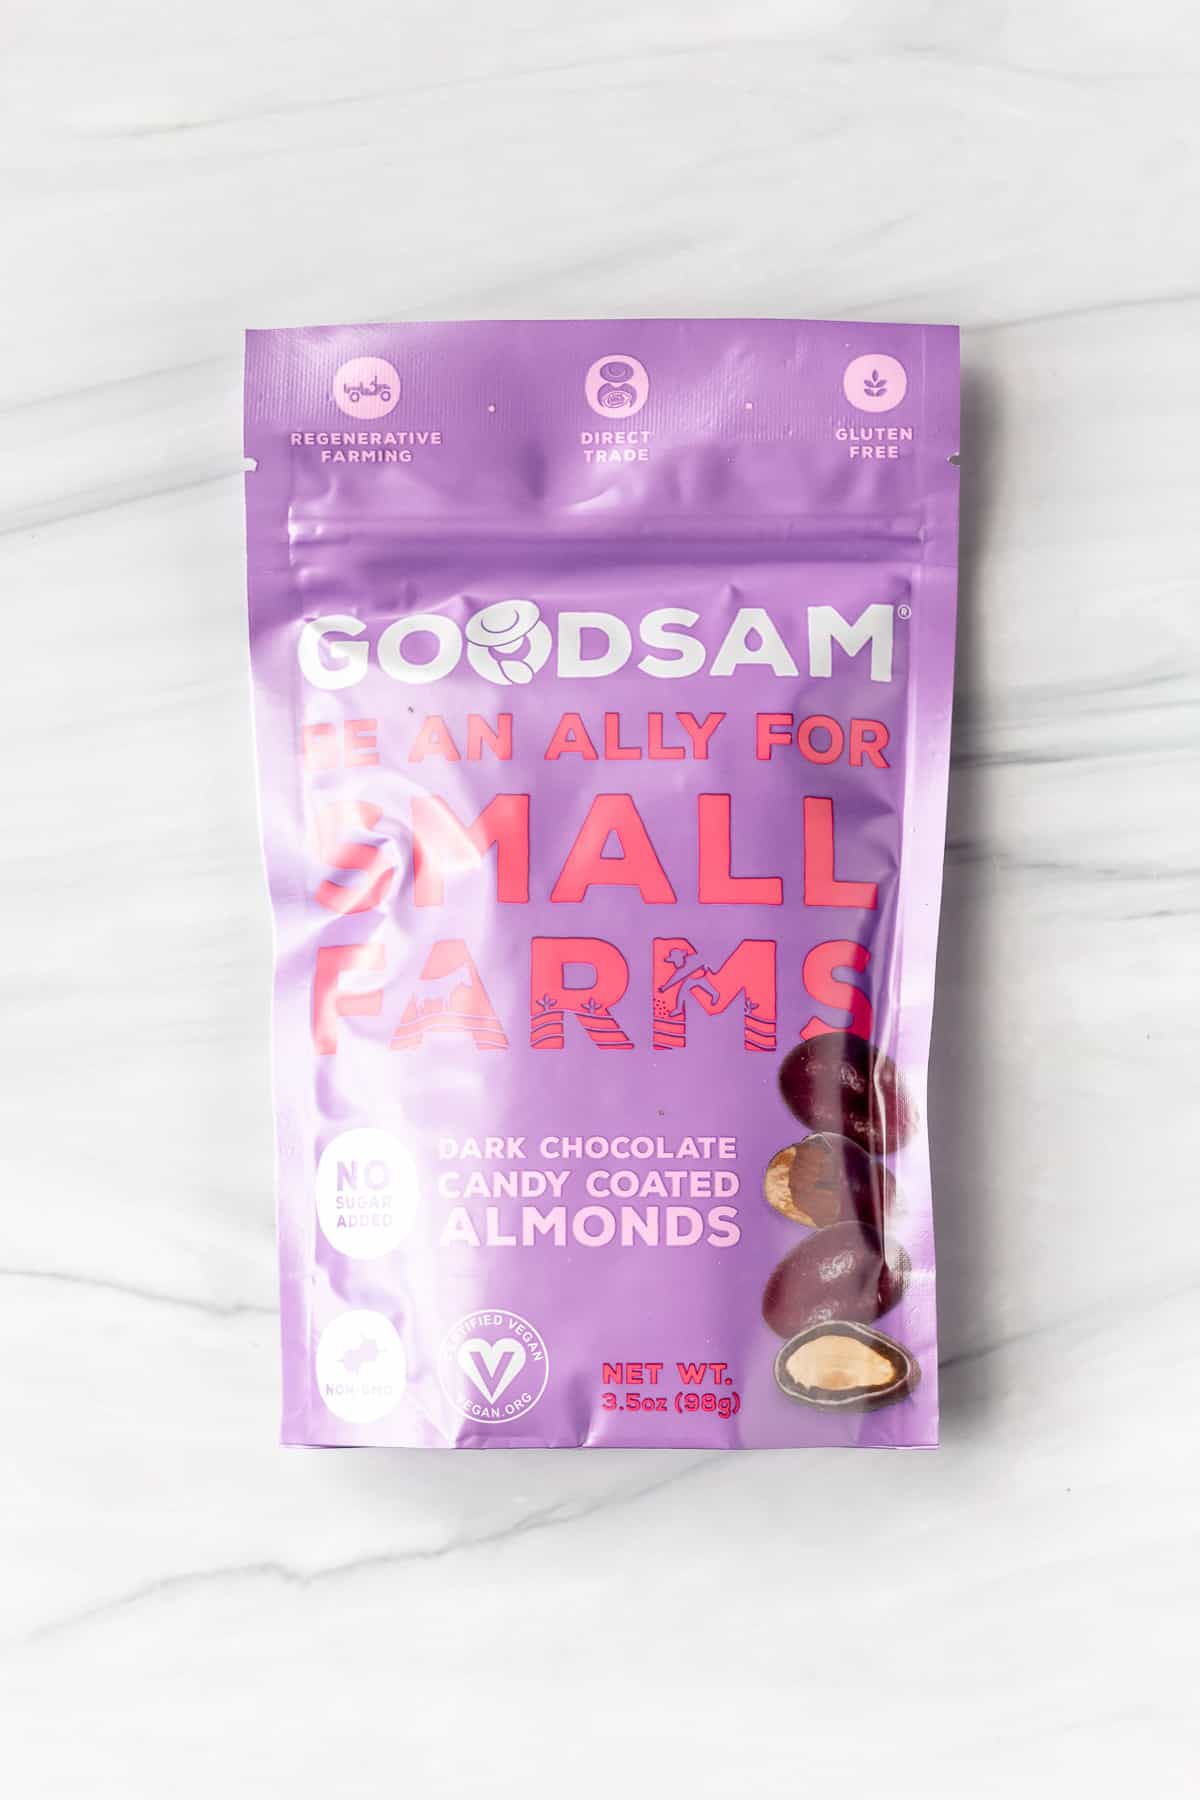 Good Sam Chocolate Covered Almonds package on a white background